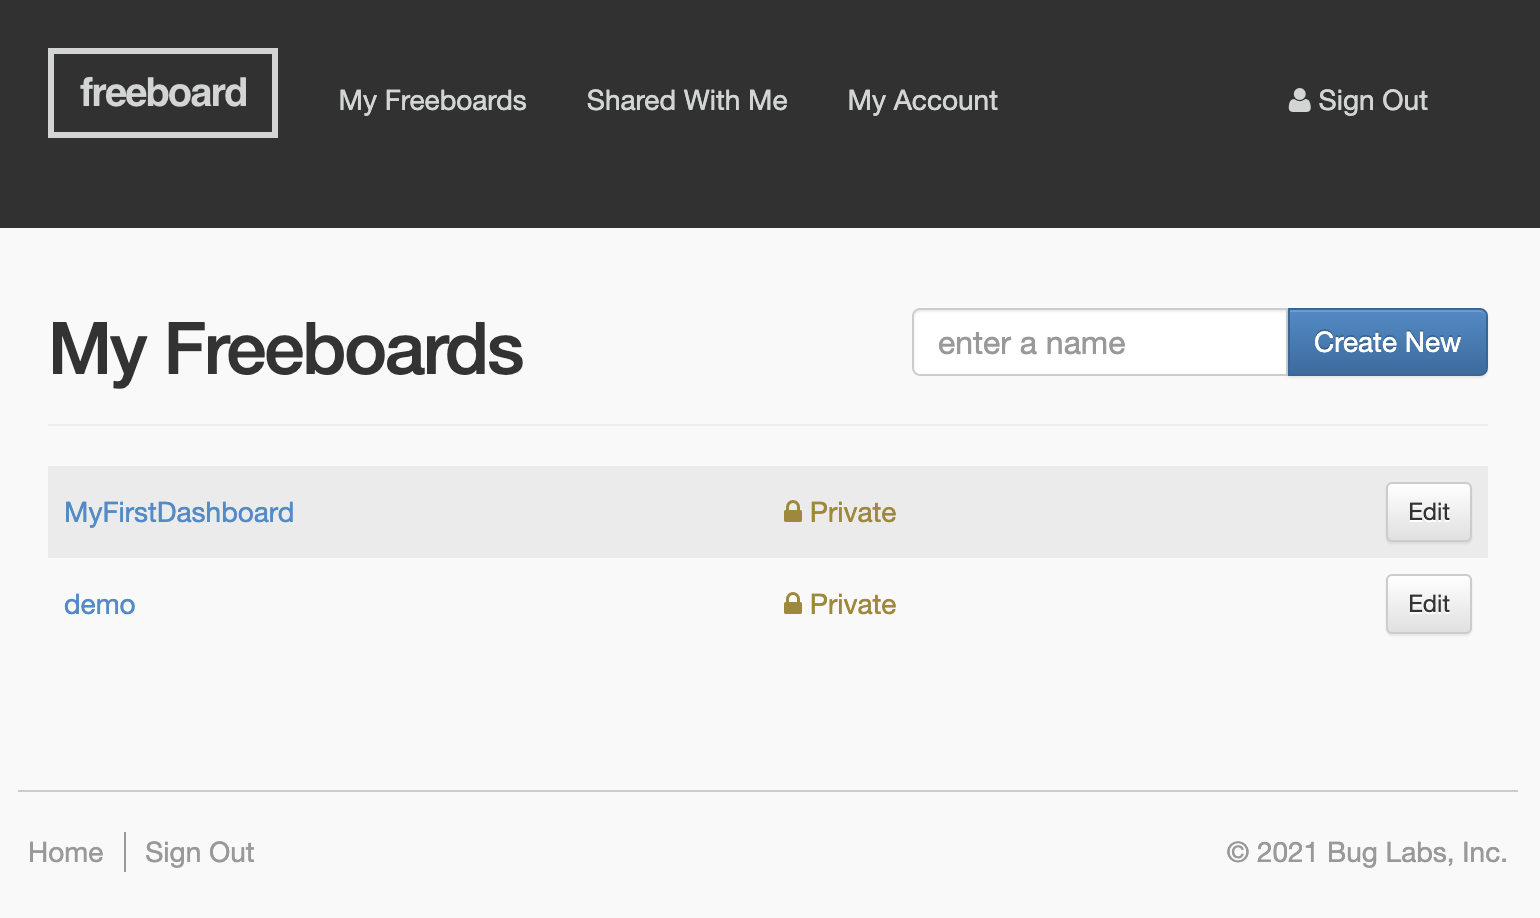 The Freeboard account page